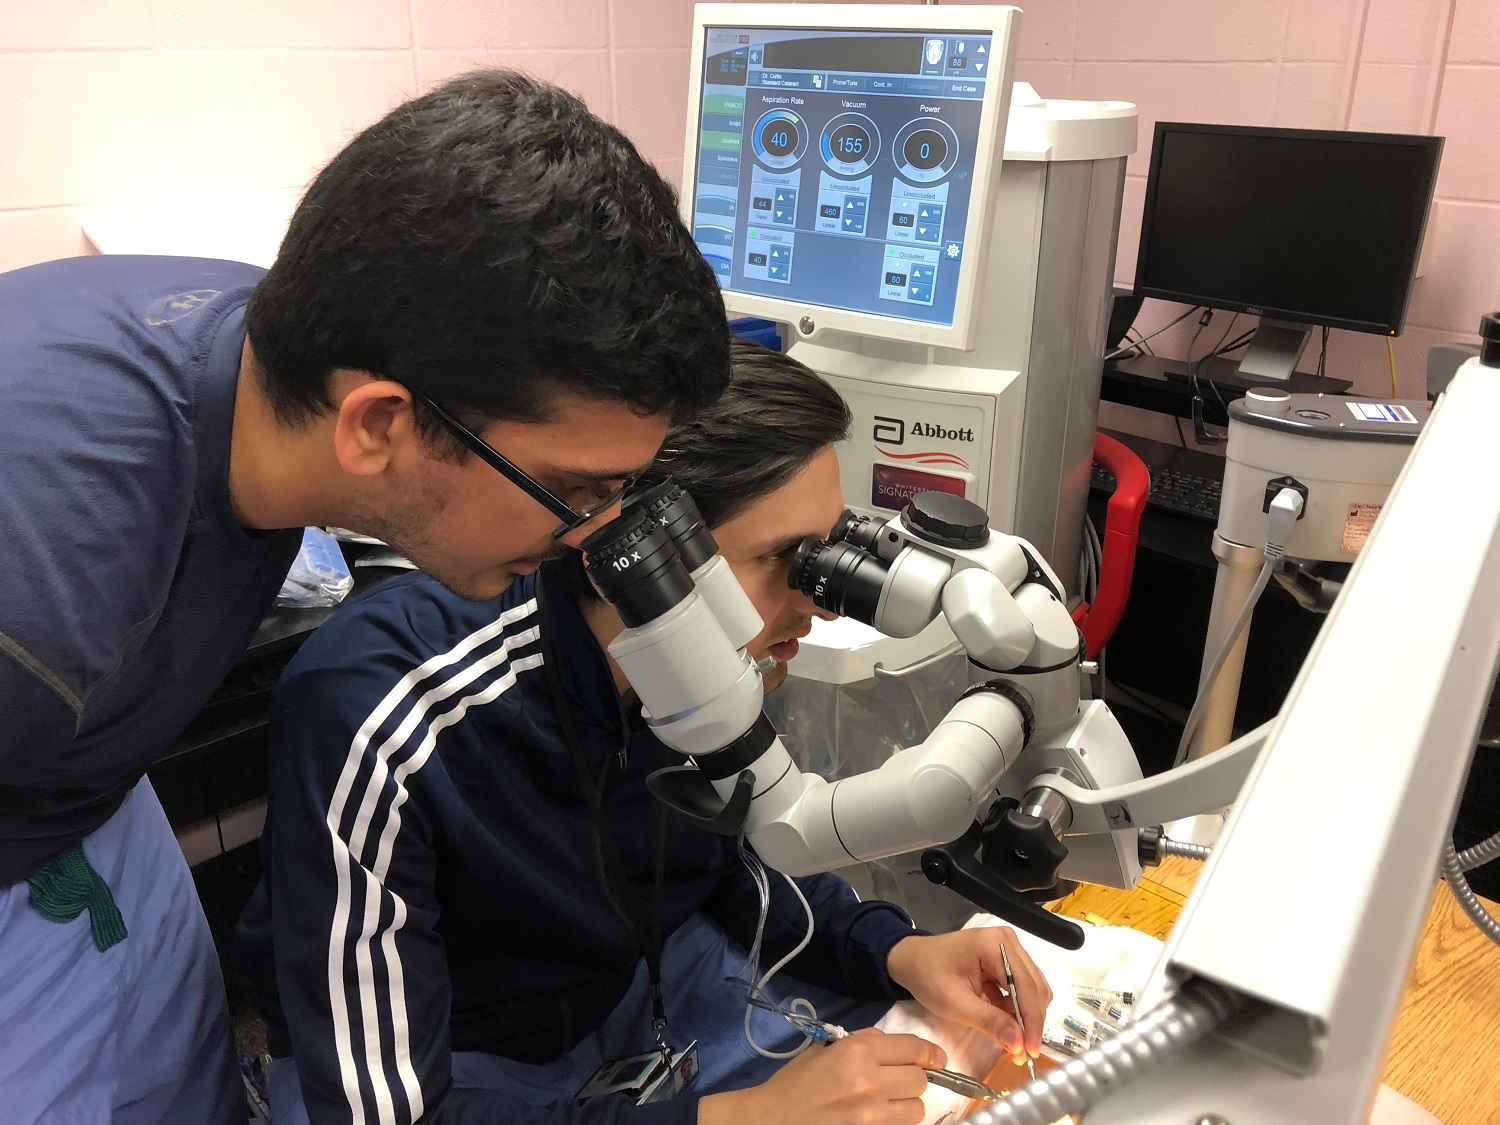 UofL ophthalmology residents certified earlier in training for advanced laser eye surgery